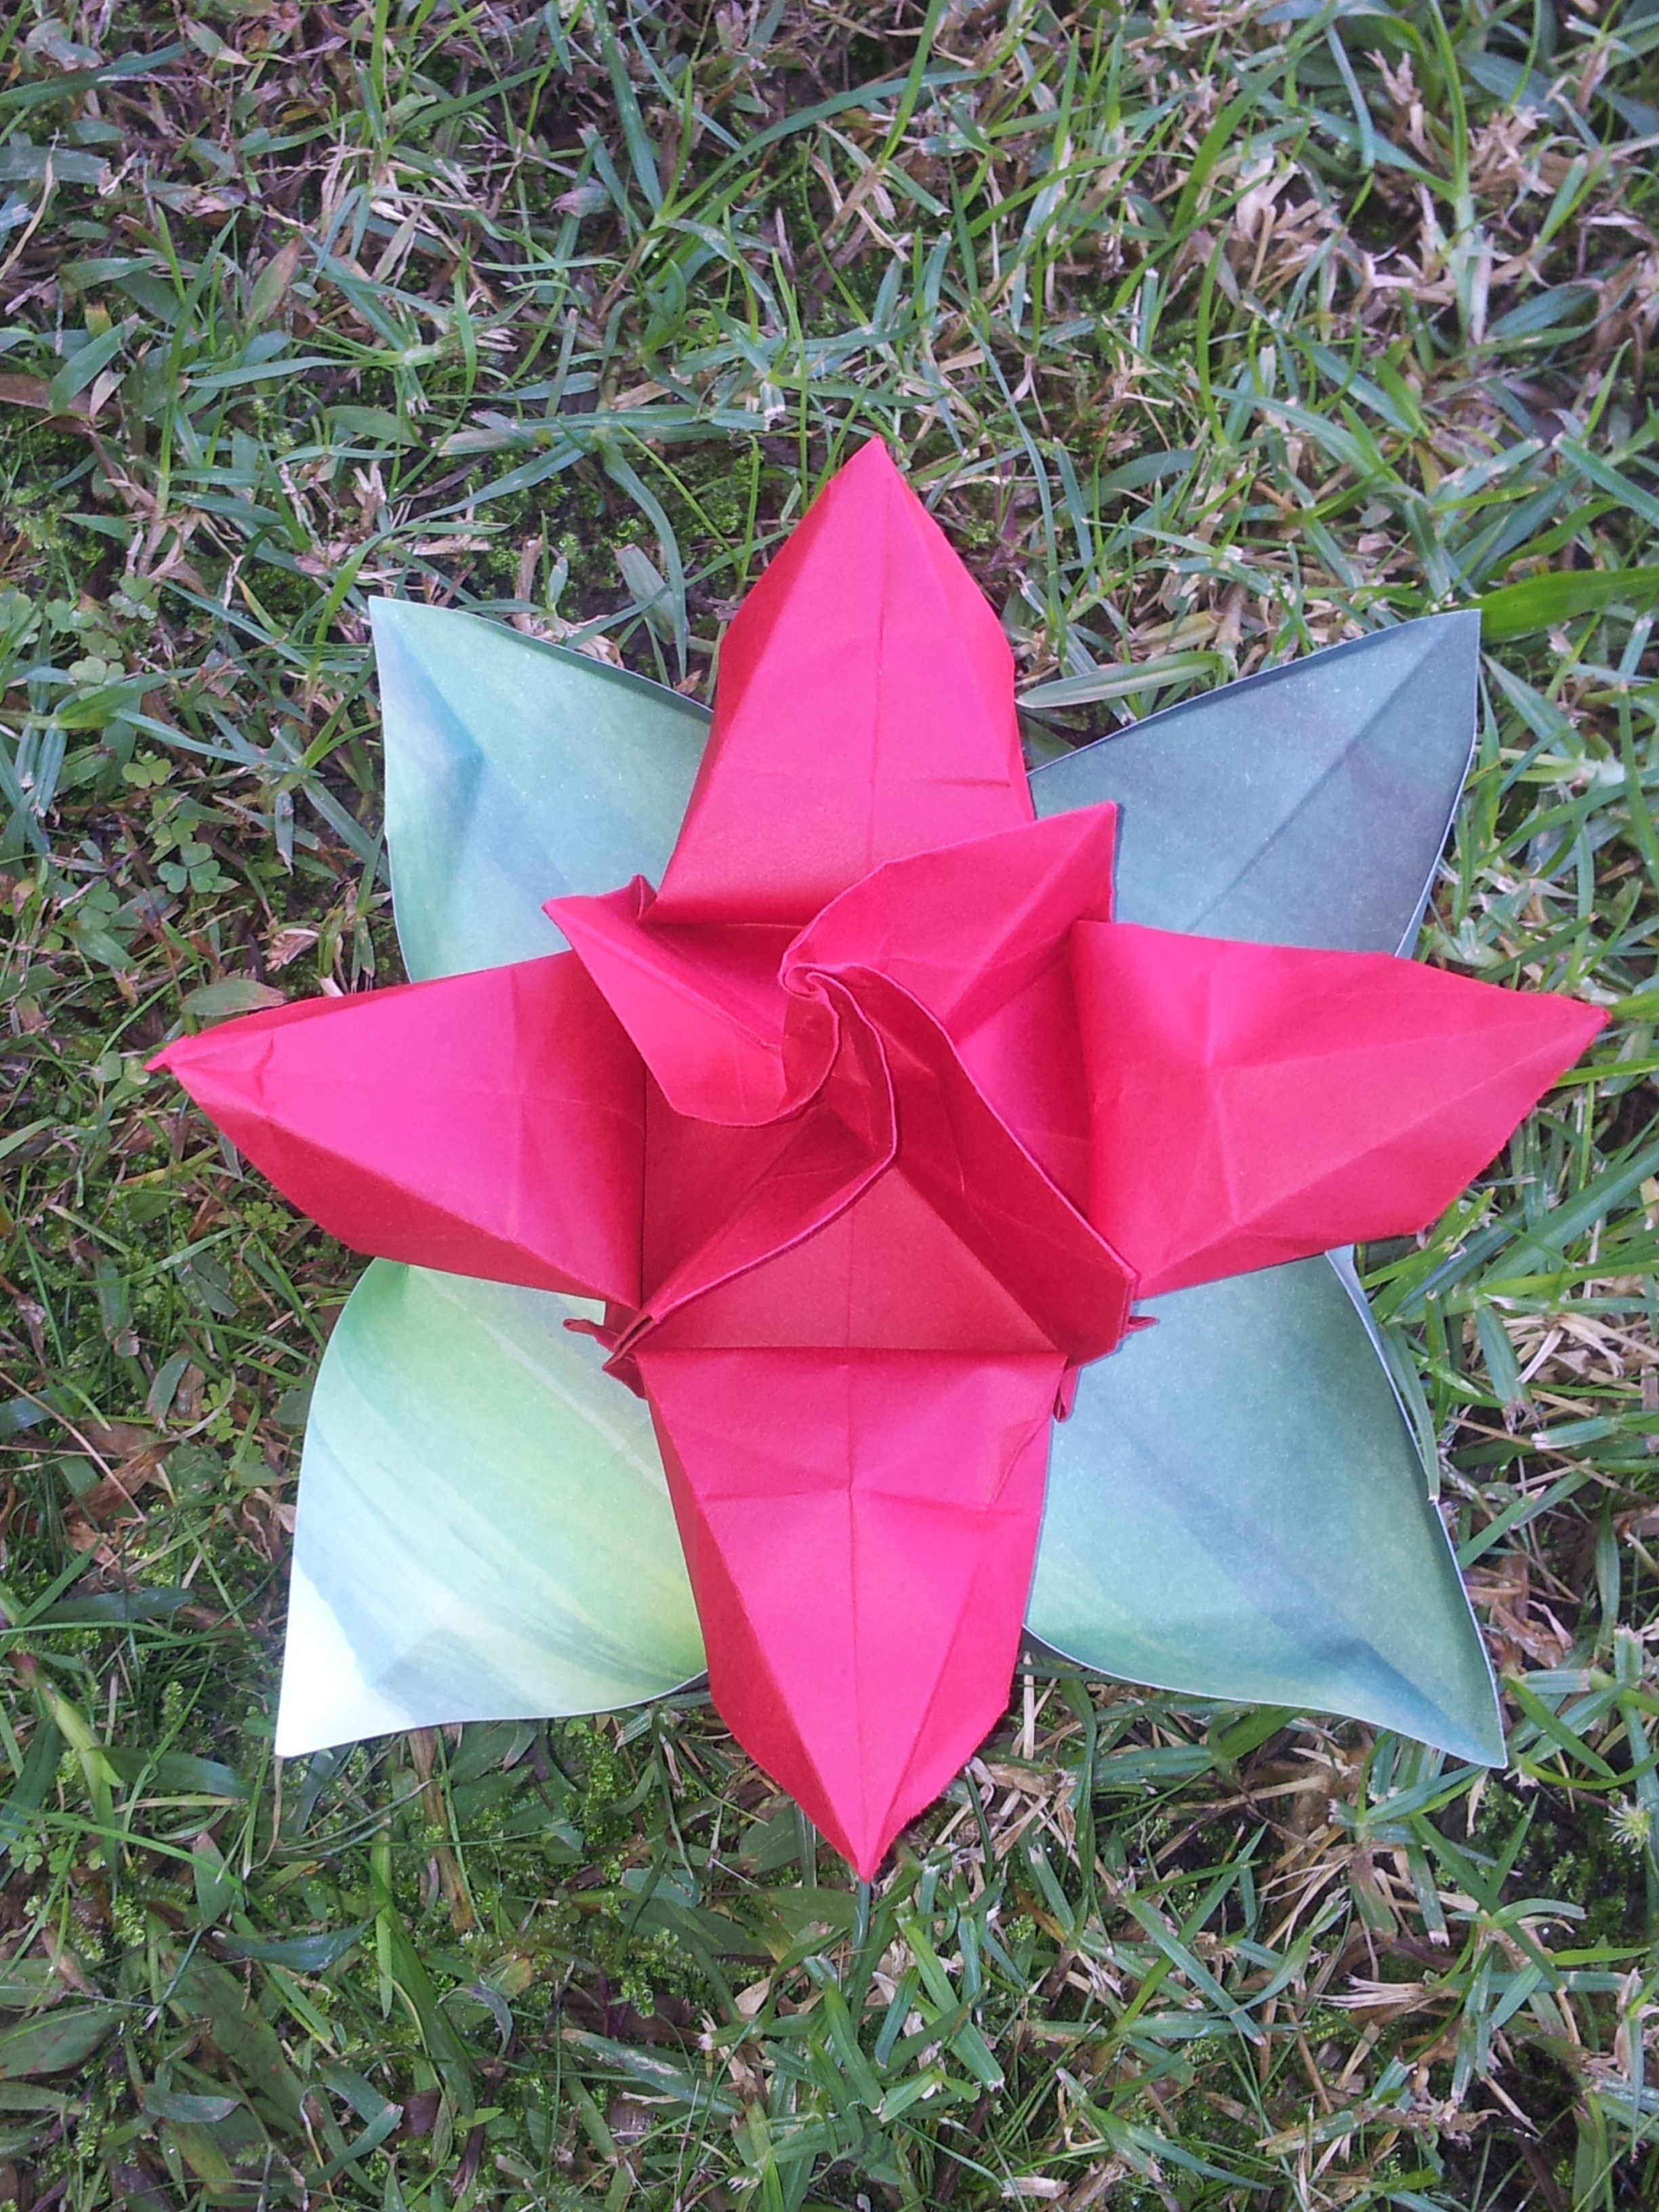 Origami Box Rose. -Florigami By Amy | origami flowers ... - photo#25